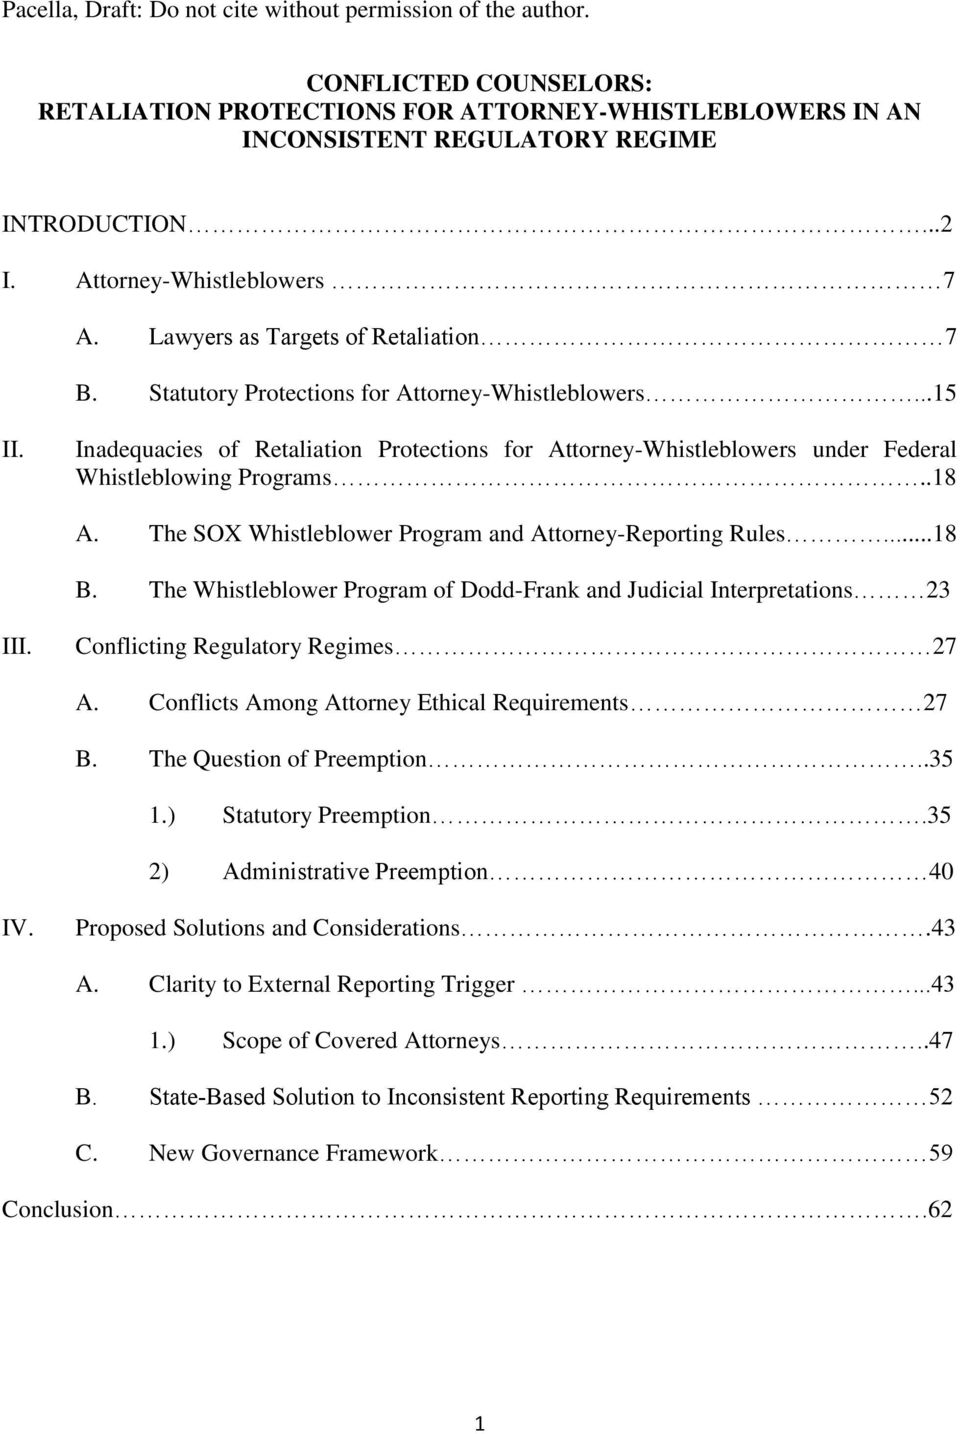 Inadequacies of Retaliation Protections for Attorney-Whistleblowers under Federal Whistleblowing Programs..18 A. The SOX Whistleblower Program and Attorney-Reporting Rules...18 B.